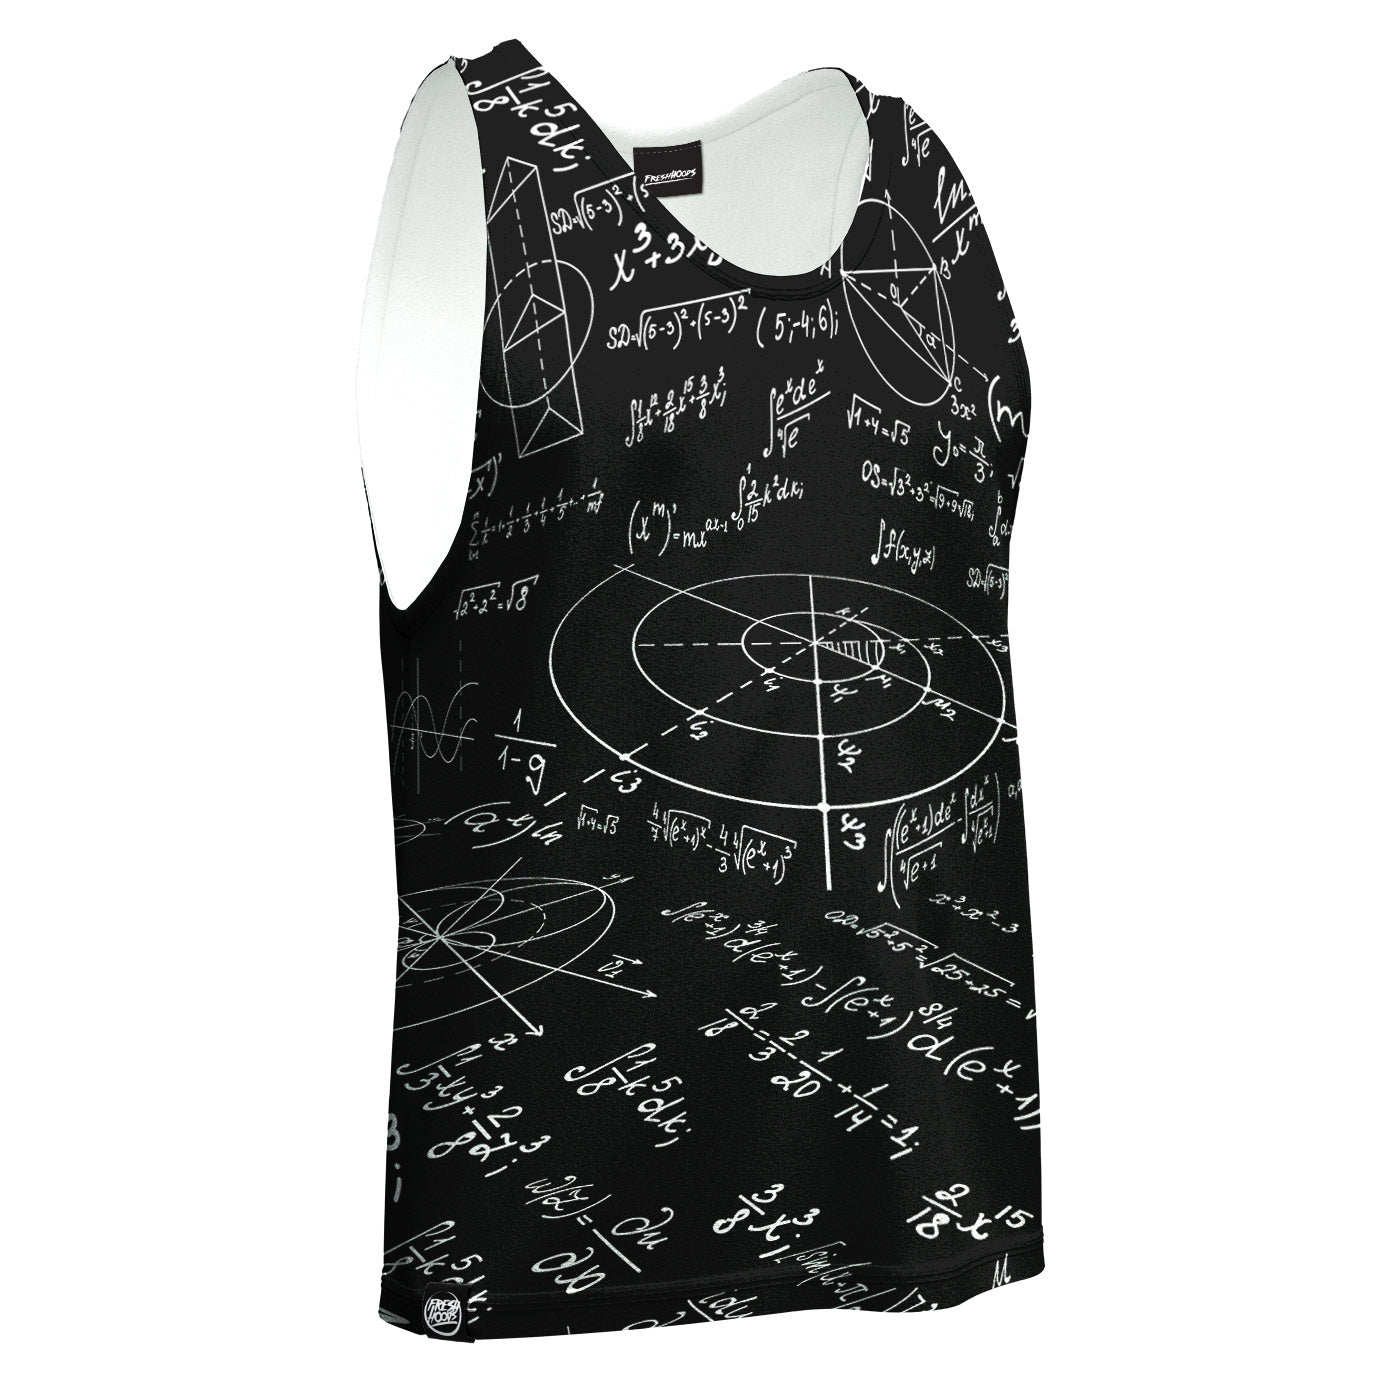 Equation Tank Top